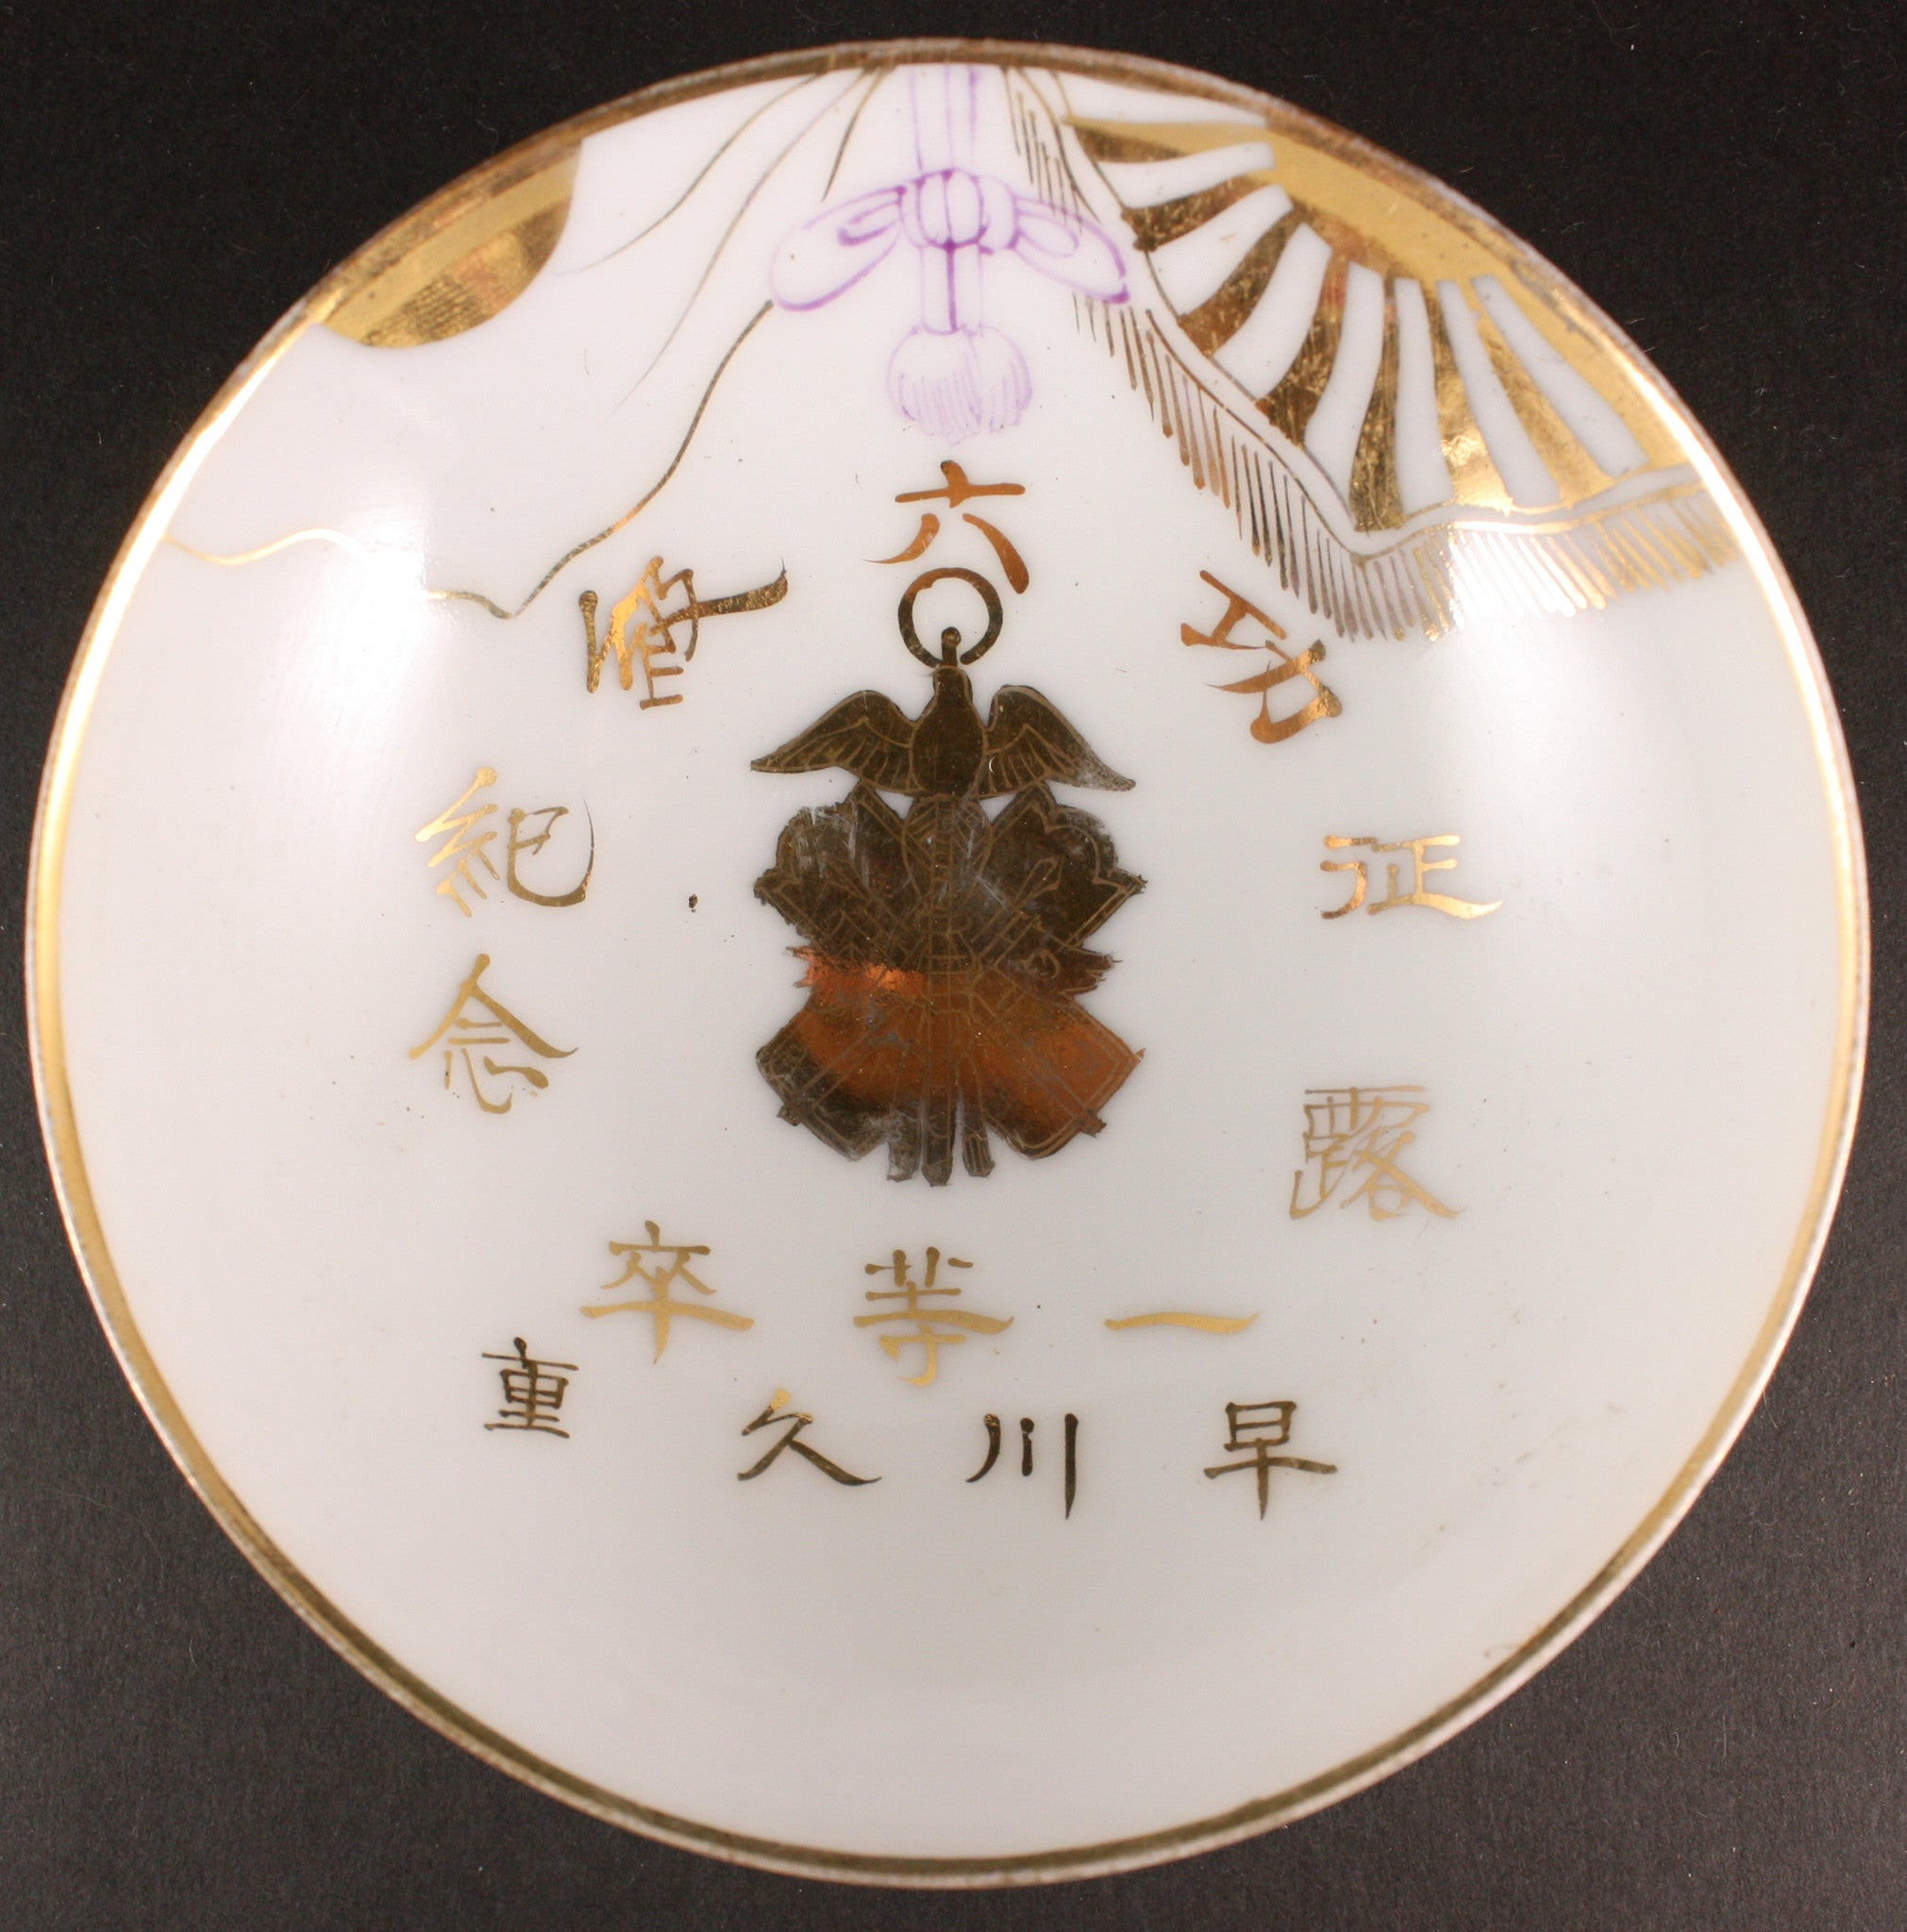 Russo Japanese War 6th Class Golden Kite Award Commemoration Army Sake Cup